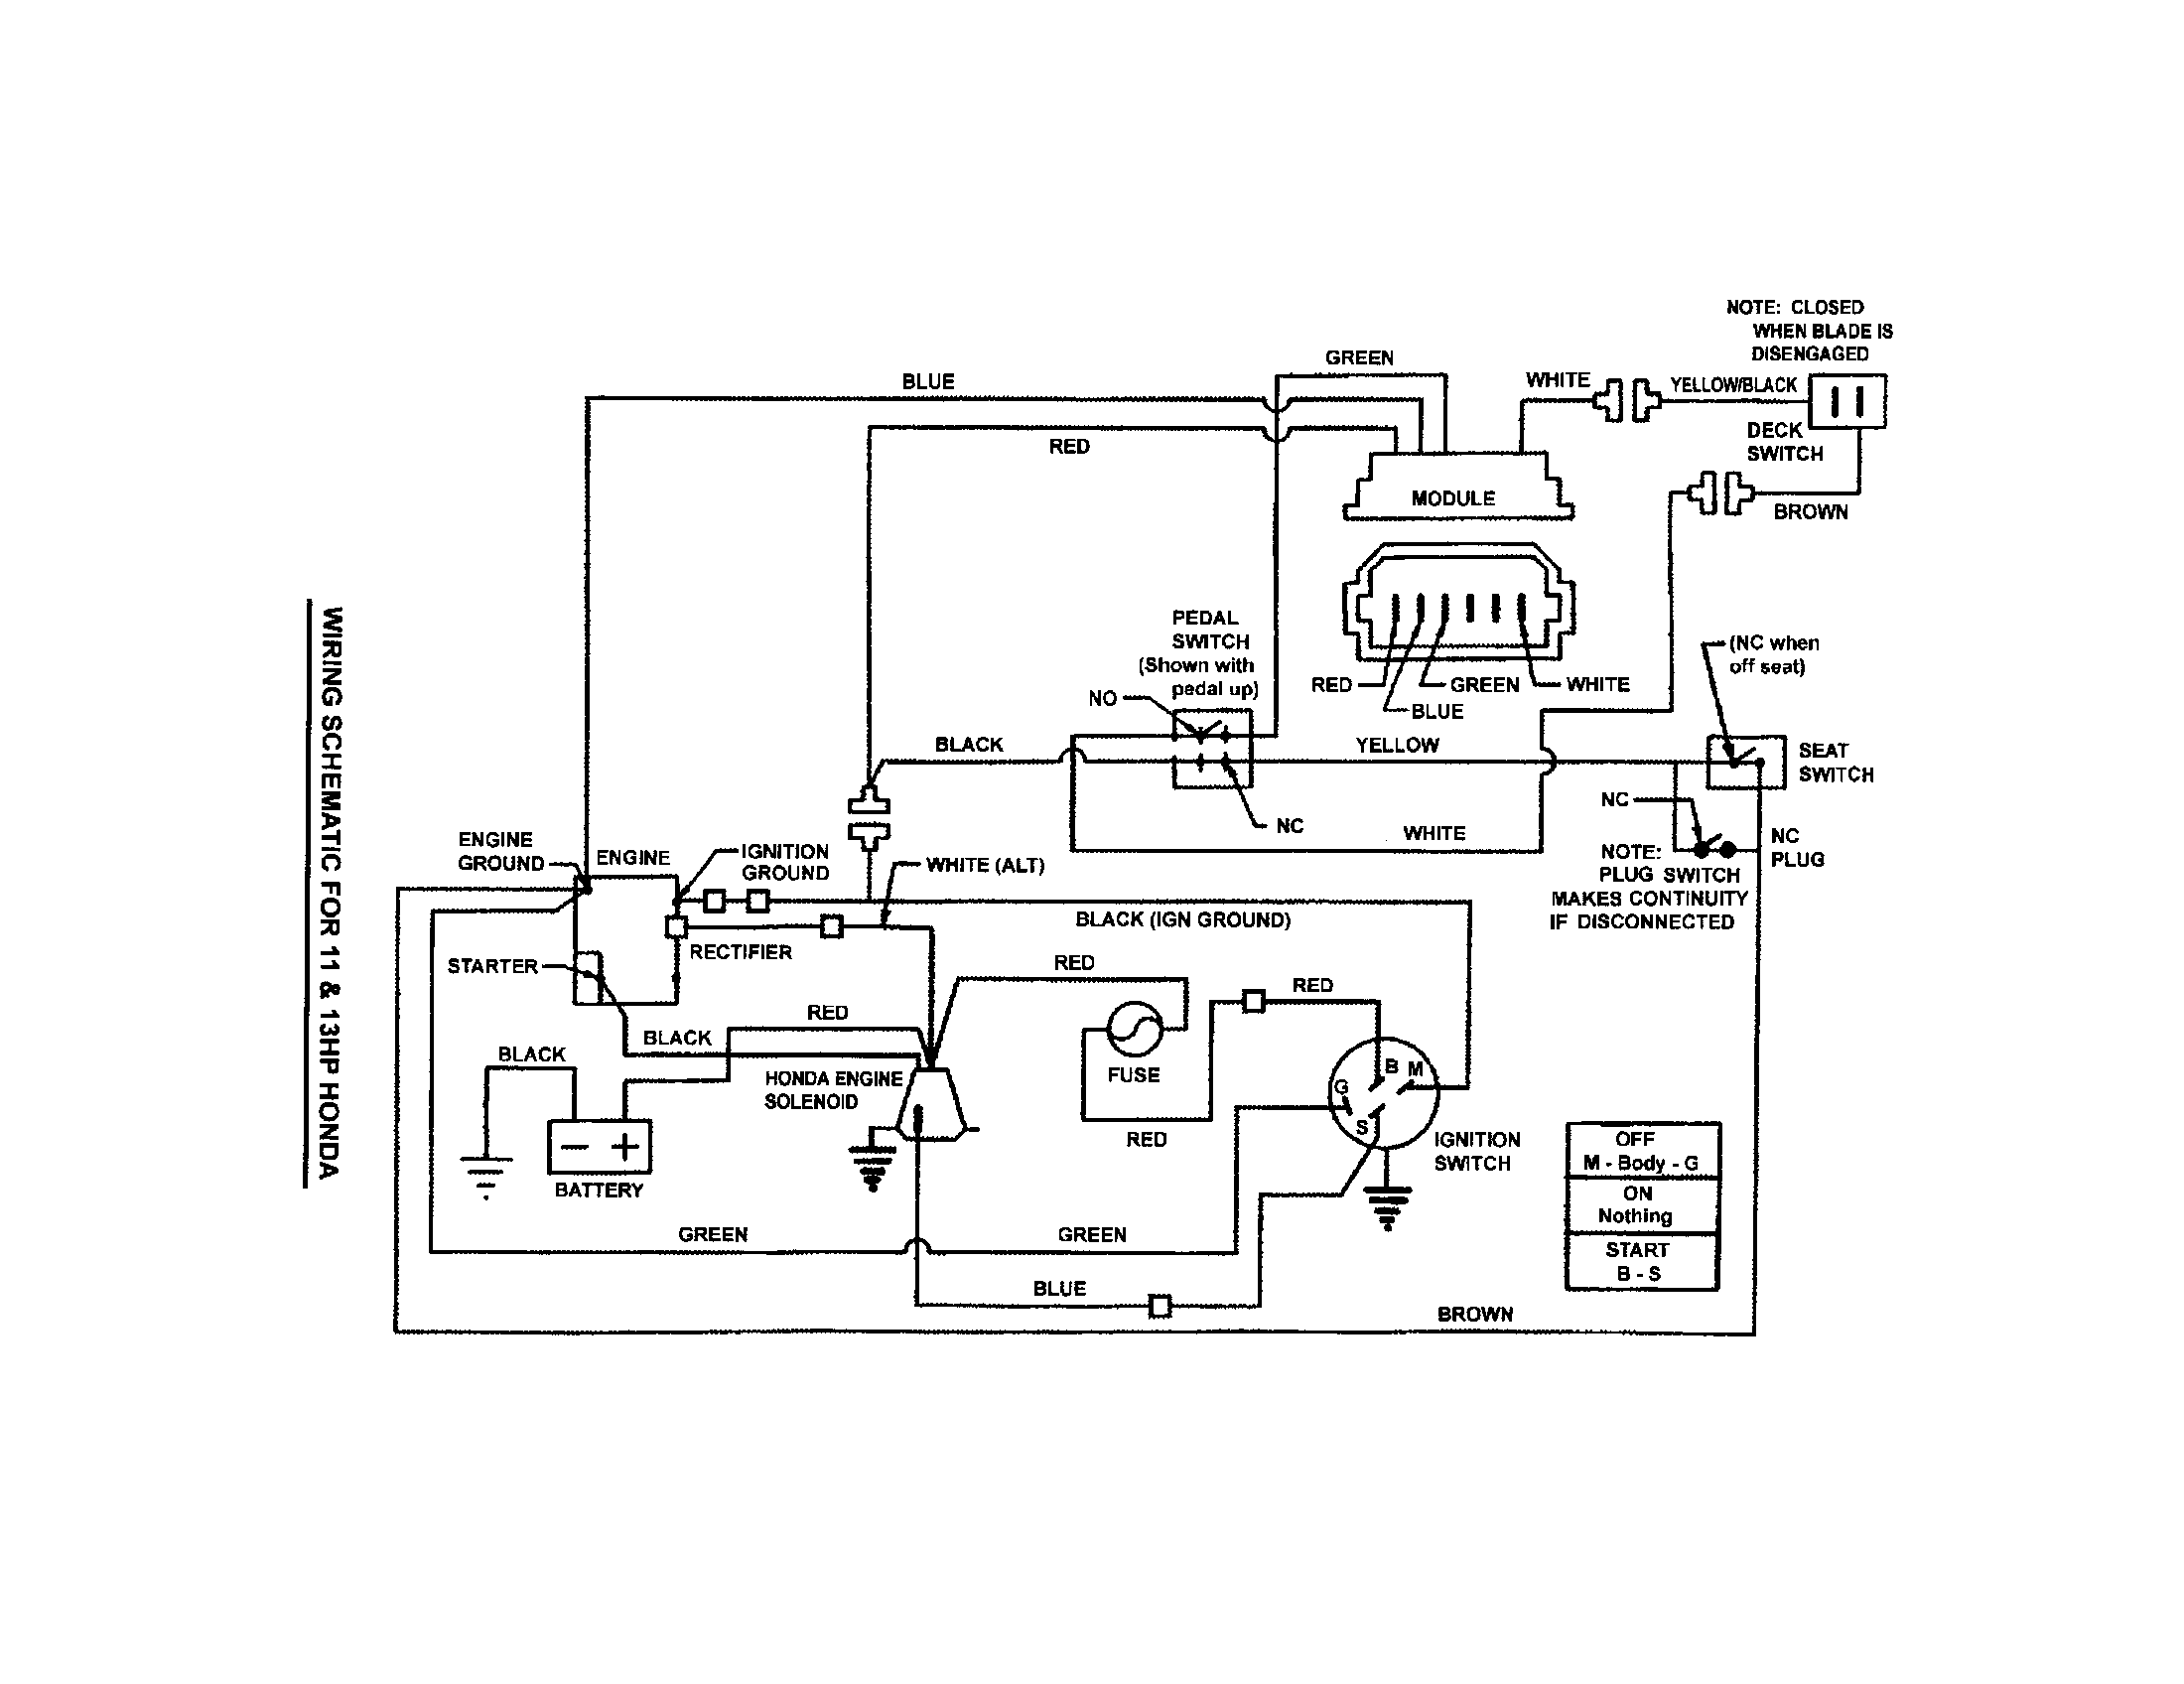 WIRING SCHEMATIC Diagram & Parts List for Model 7085622